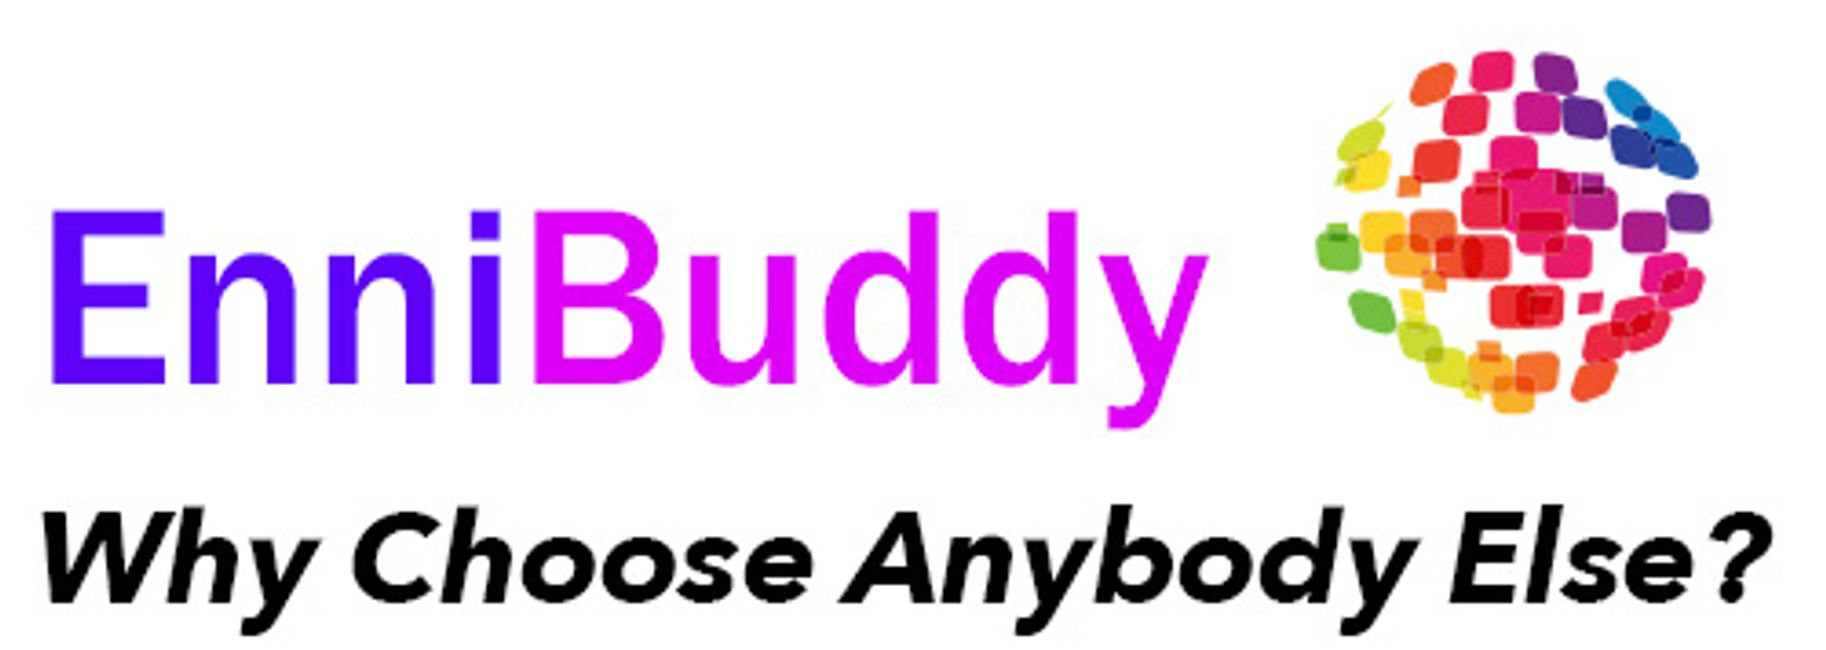 Why hire just anybody when you can get EnniBuddy?